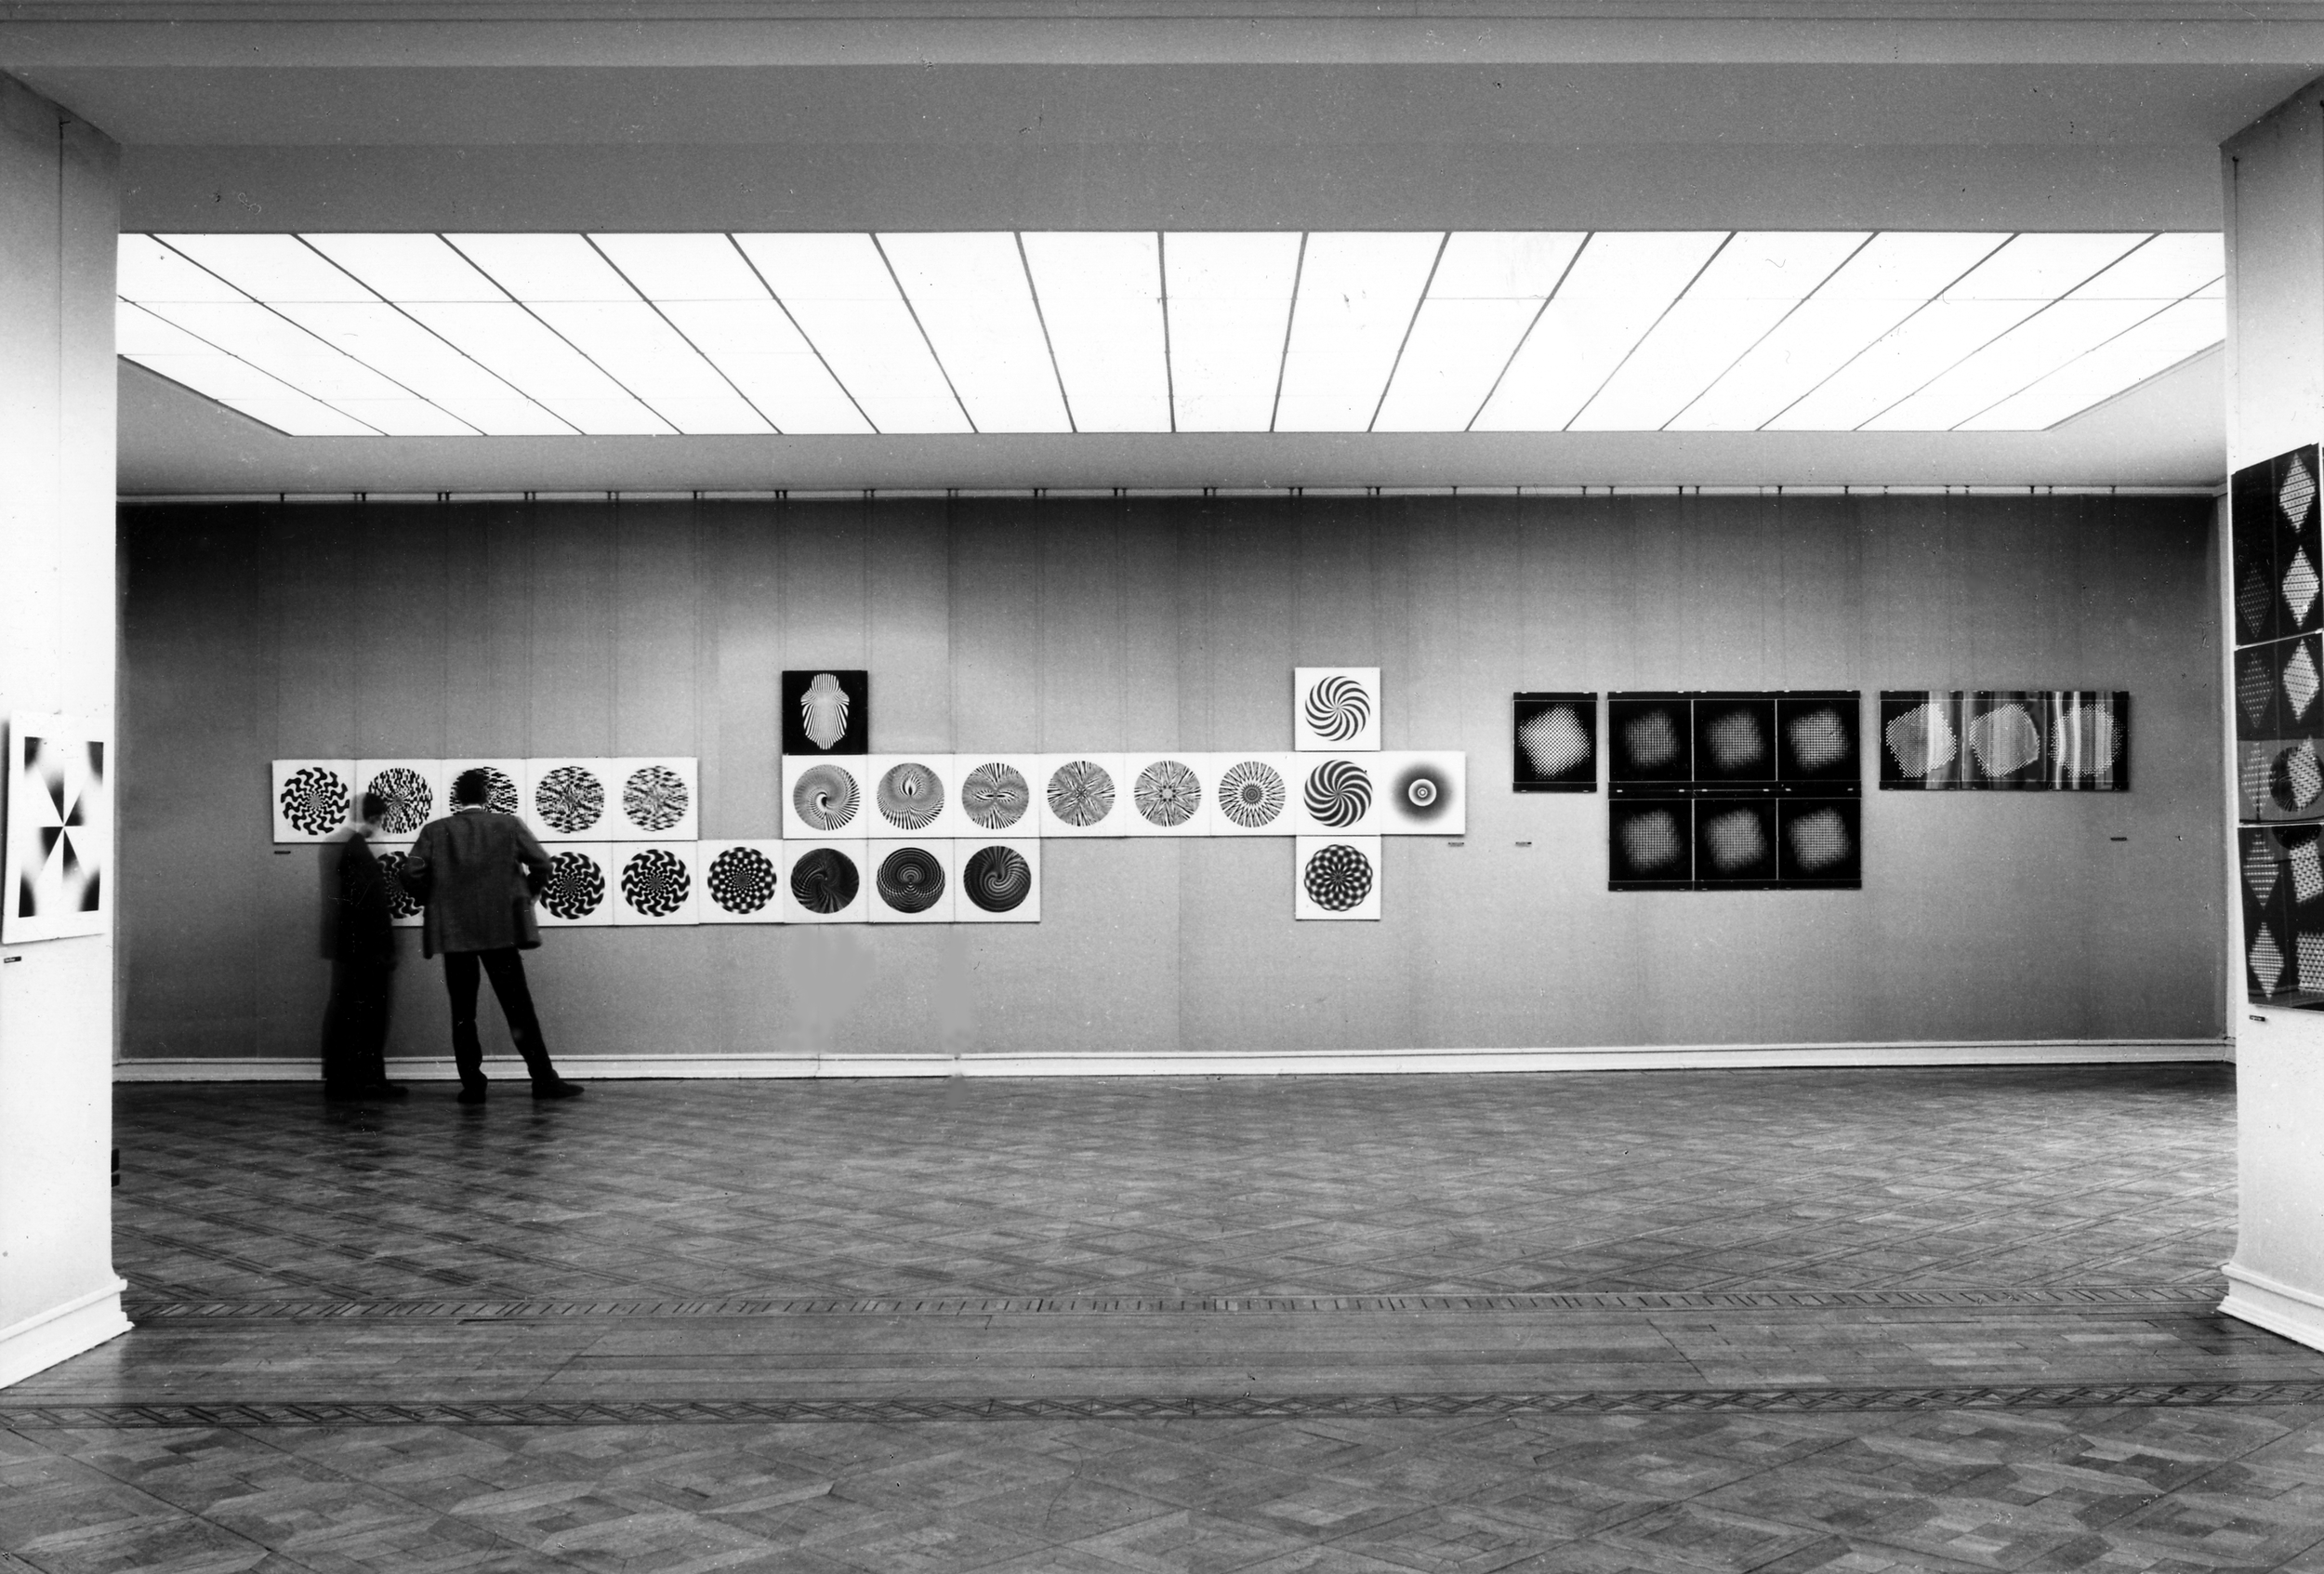 Exhibition view of  Generative Fotografie  at Kunsthaus Bielefeld, 1968; included works by Kilian Breier (l.), Pierre Cordier, Hein Gravenhorst (l.) and Gottfried Jäger (r.; curator); catalogue text by Herbert W. Franke